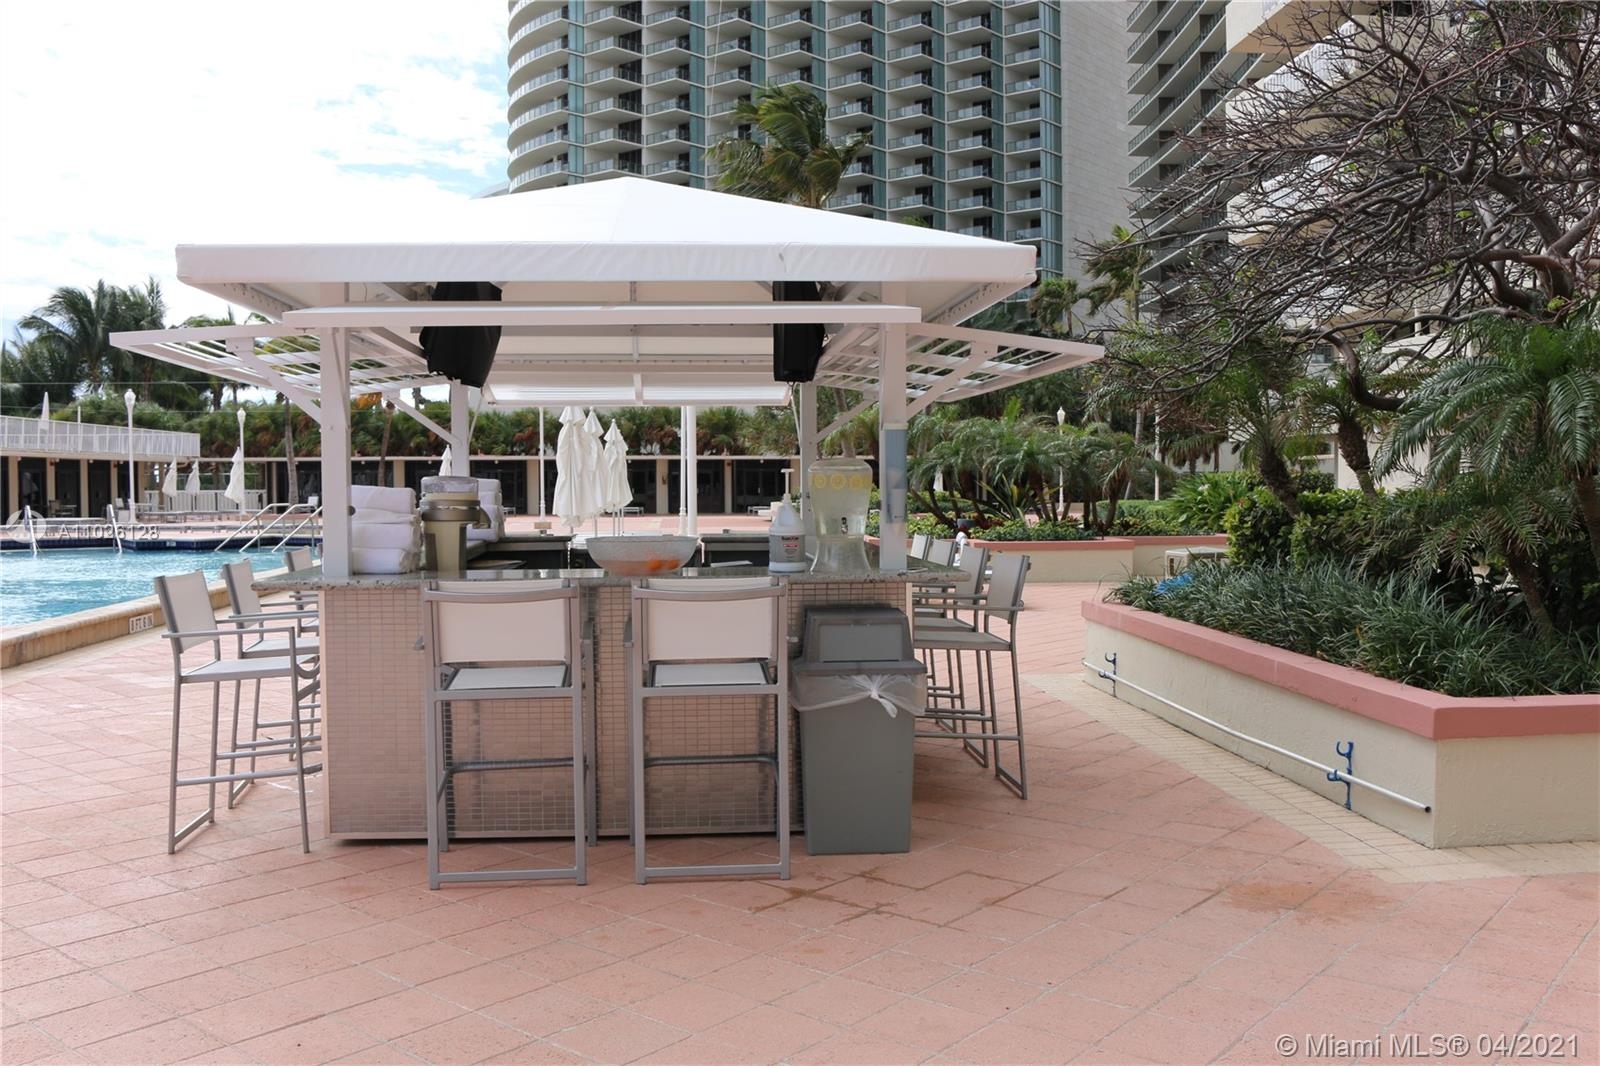 Photo of 9801 Collins Ave #20V, Bal Harbour, Florida, 33154 - Gym at the third floor